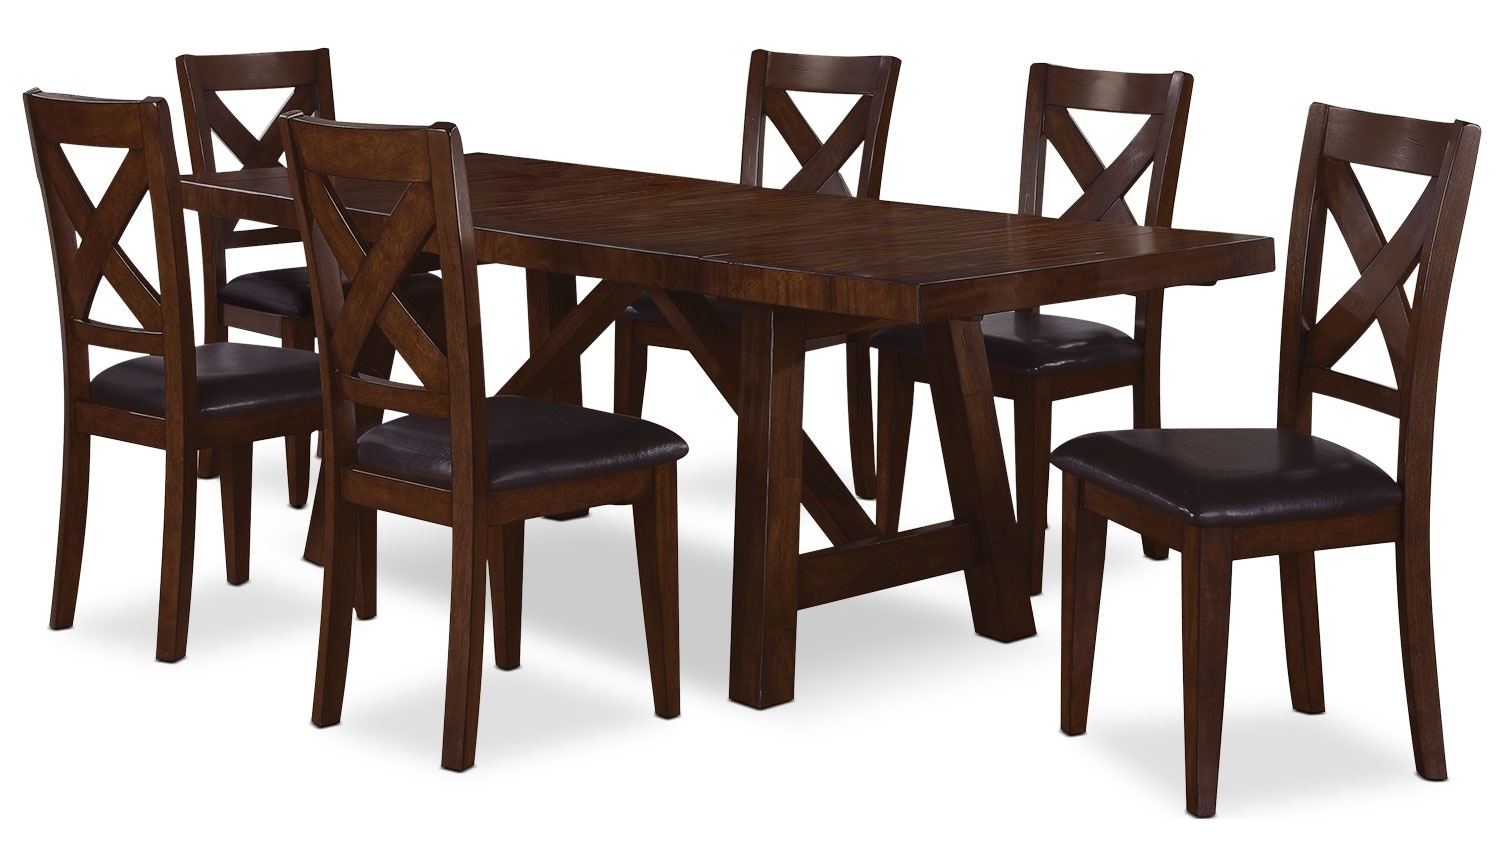 Dining Room Furniture - Adara 7 Piece Dining Package with Cross-Back Chairs